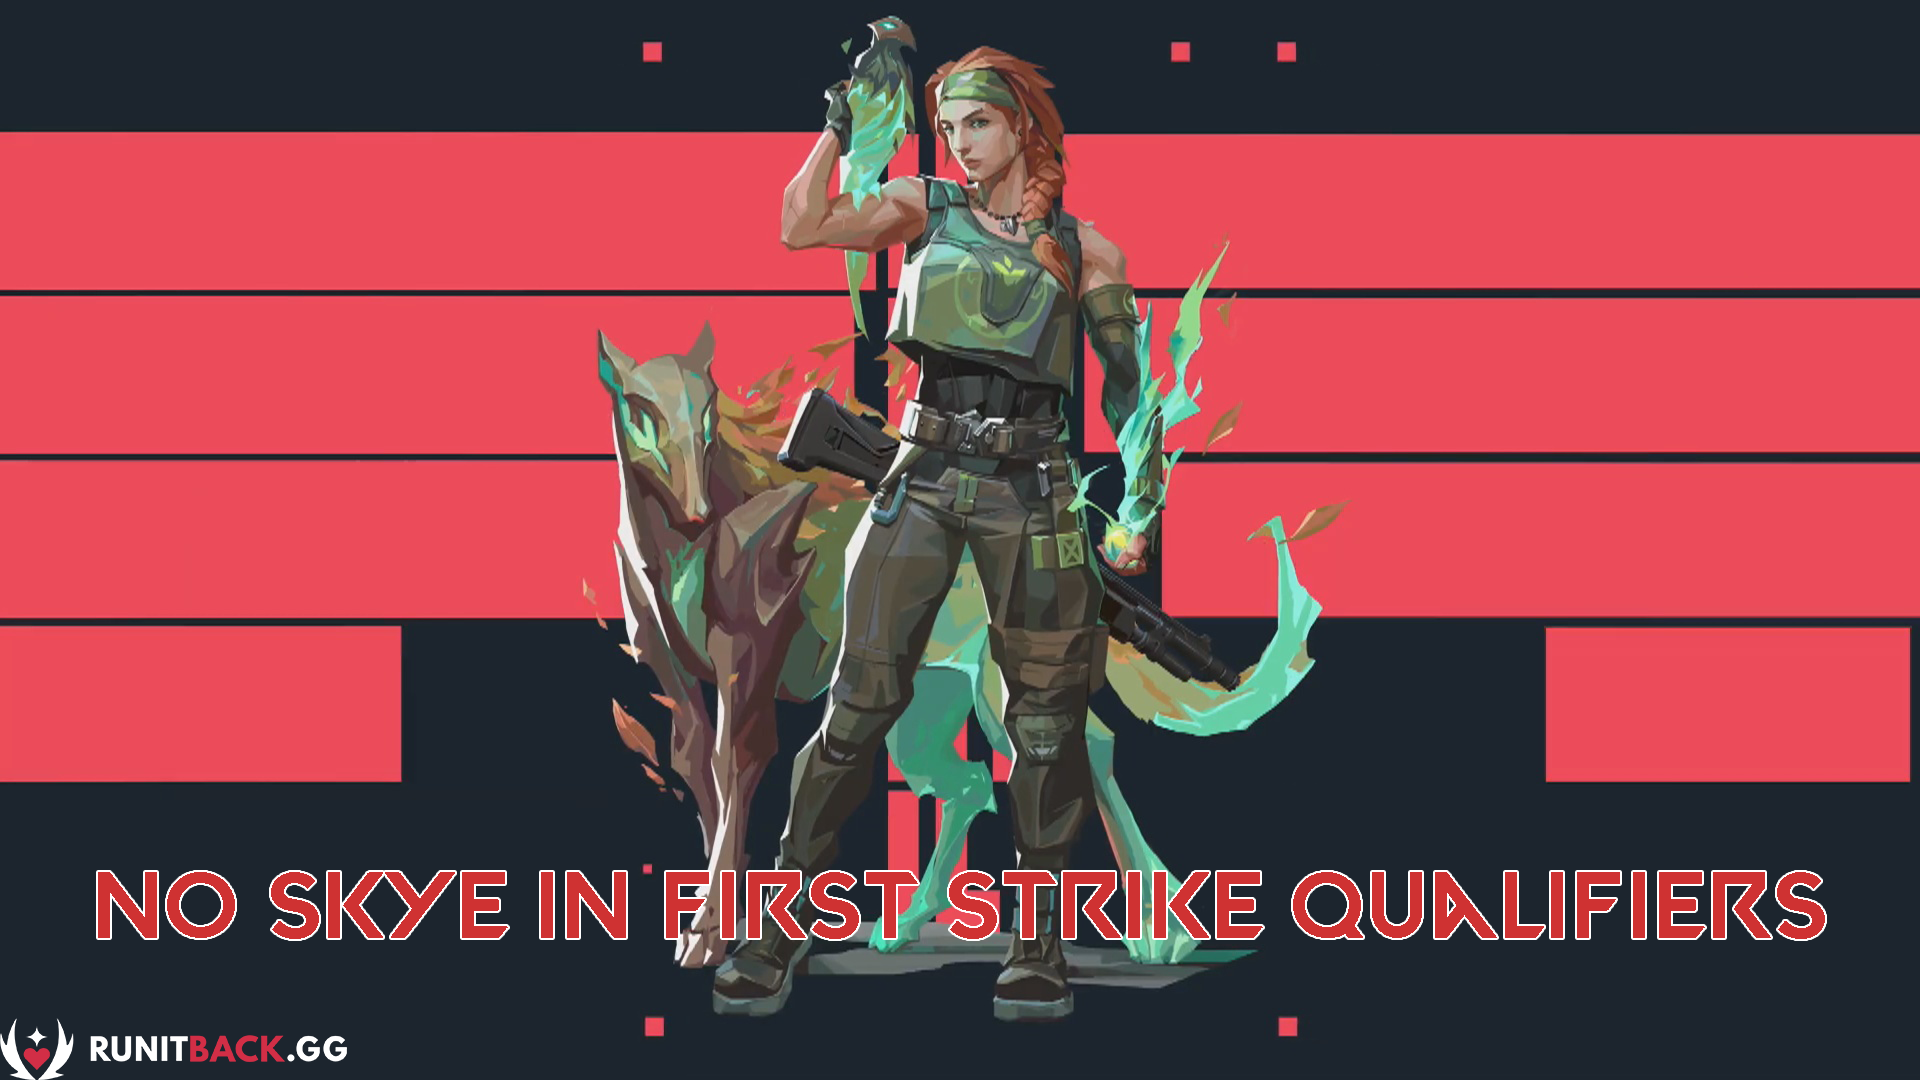 Skye delay results in her absence from First Strike